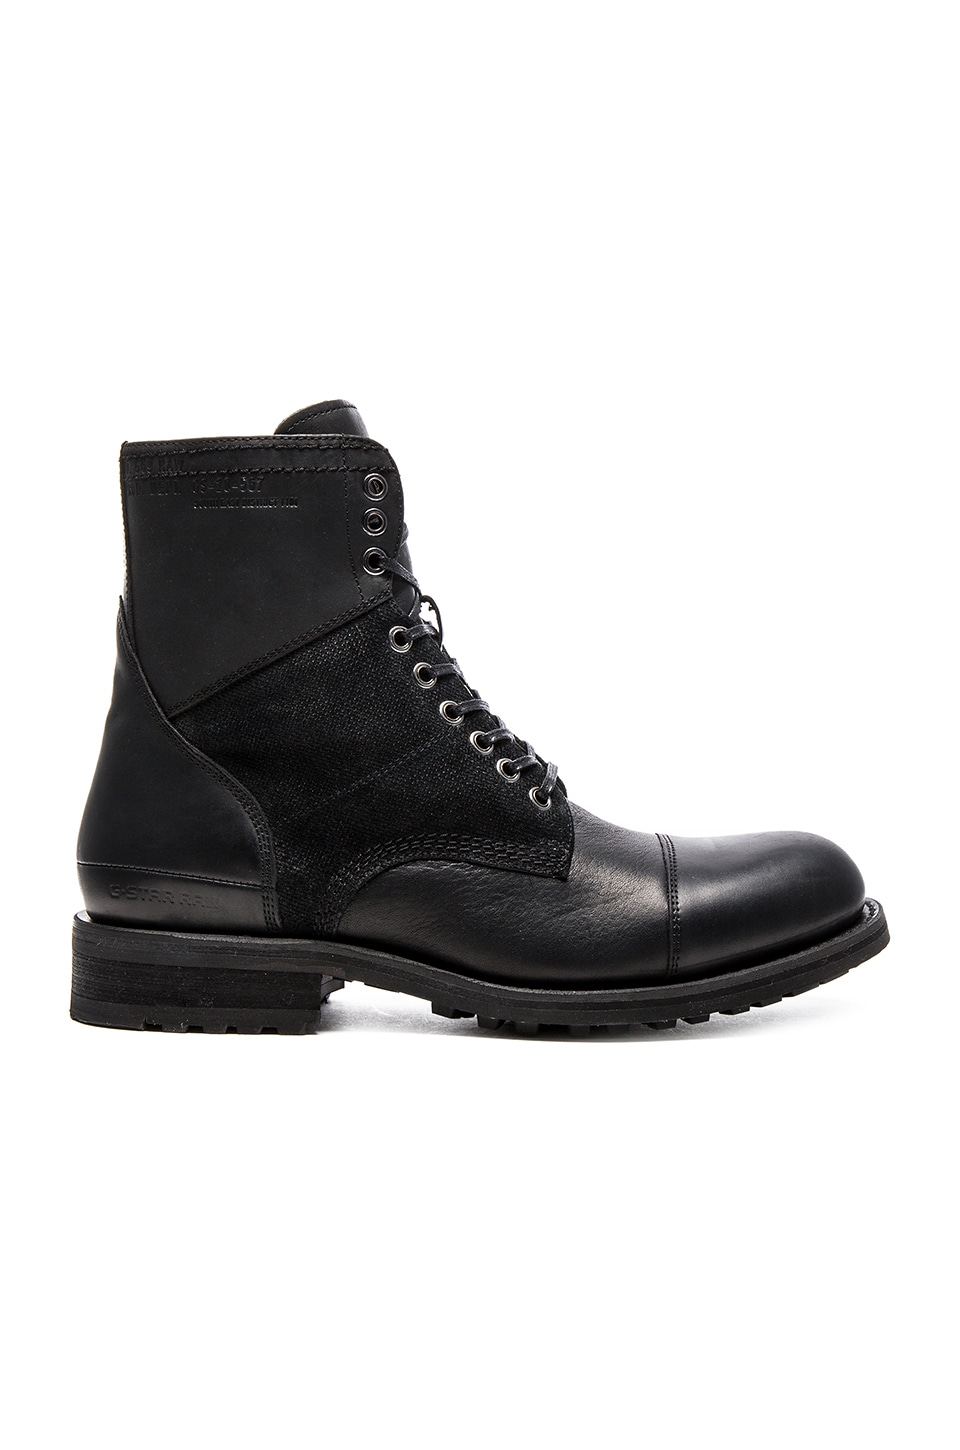 G-Star Patton V Battalion in Black Leather & Suede